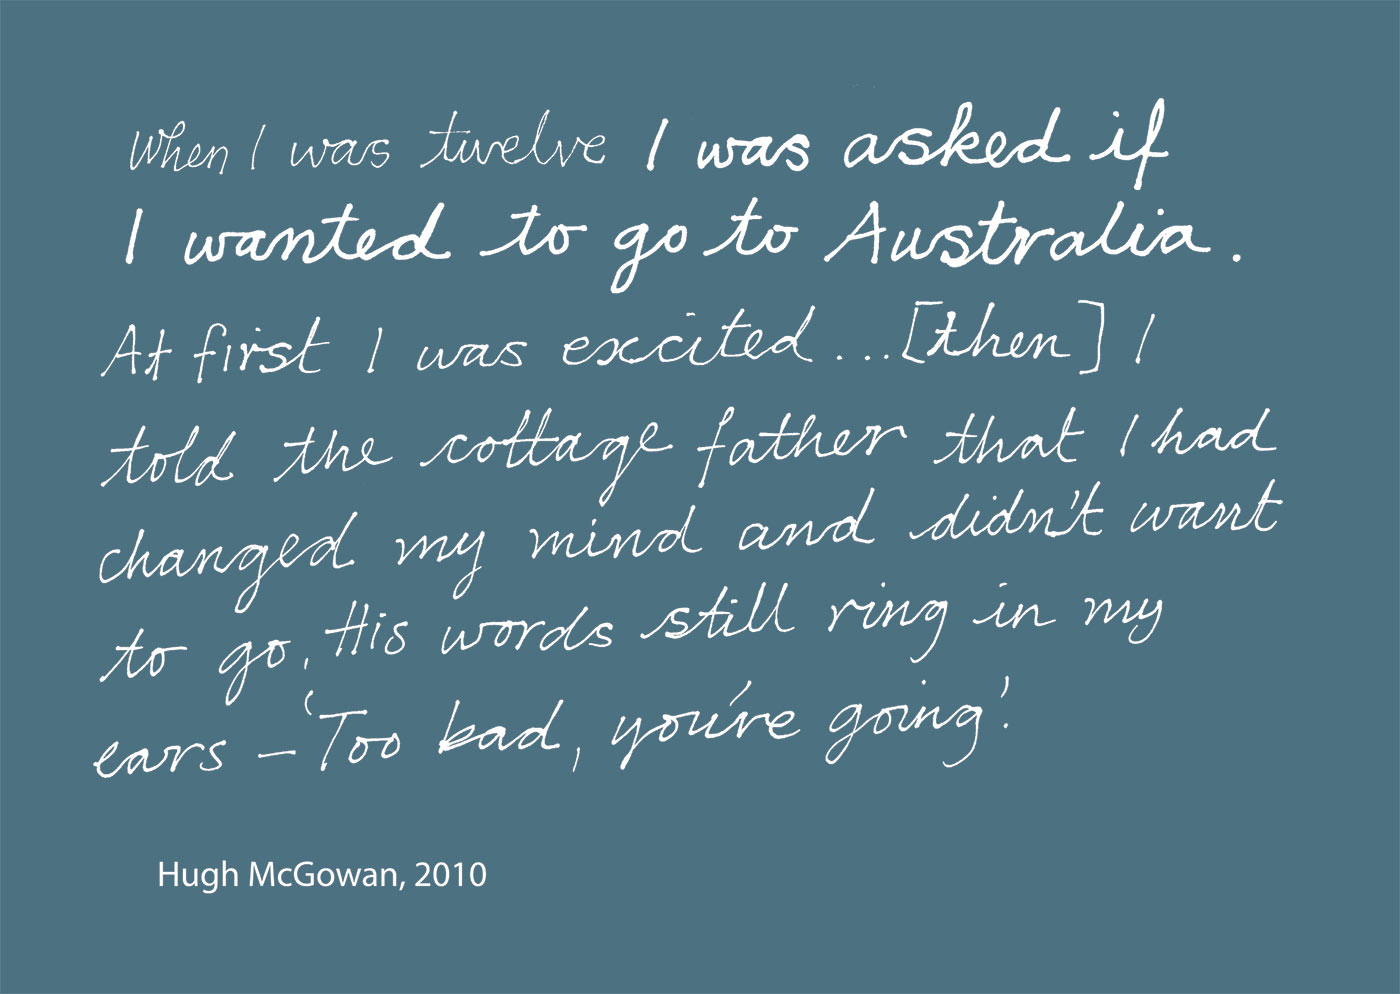 Exhibition graphic panel that reads: 'When I was twelve I was asked if I wanted to go to Australia. At first I was excited … [then] I told the cottage father that I had changed my mind and didn't want to go. His words still ring in my ears -